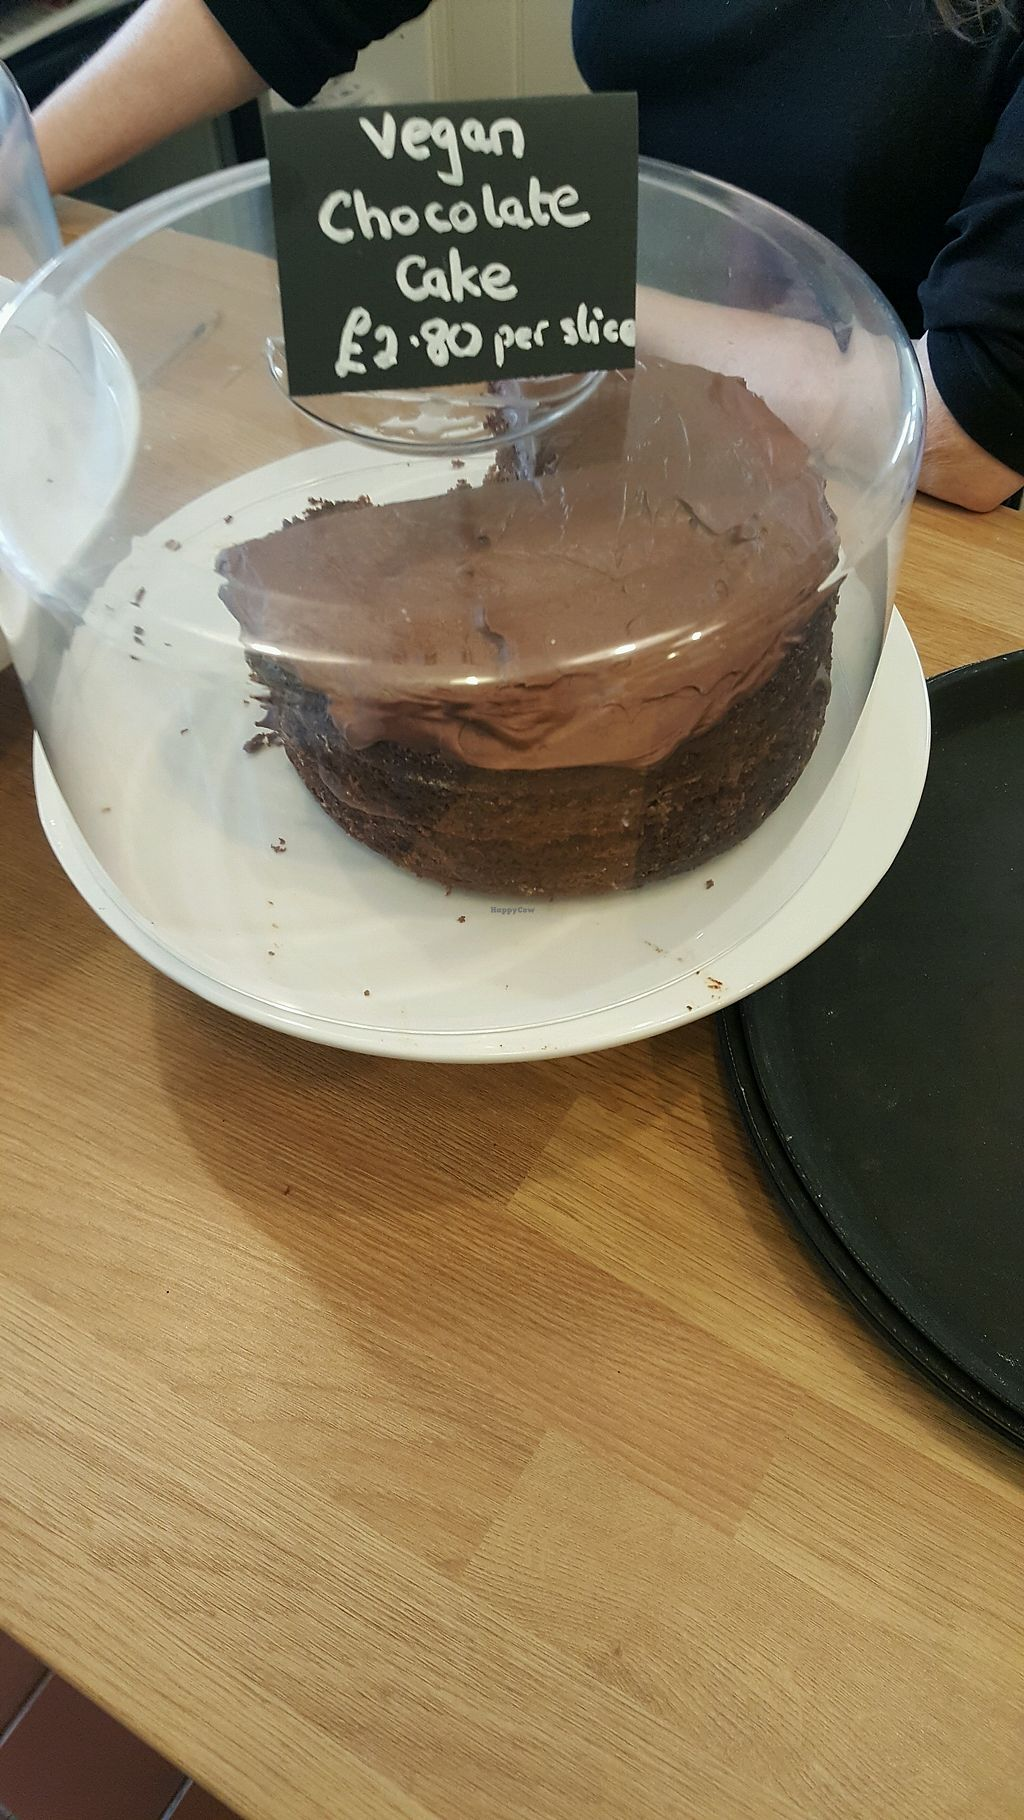 """Photo of The Green Cottage  by <a href=""""/members/profile/KarlAyers"""">KarlAyers</a> <br/>Vegan Chocolate Cake <br/> March 14, 2018  - <a href='/contact/abuse/image/110024/370564'>Report</a>"""